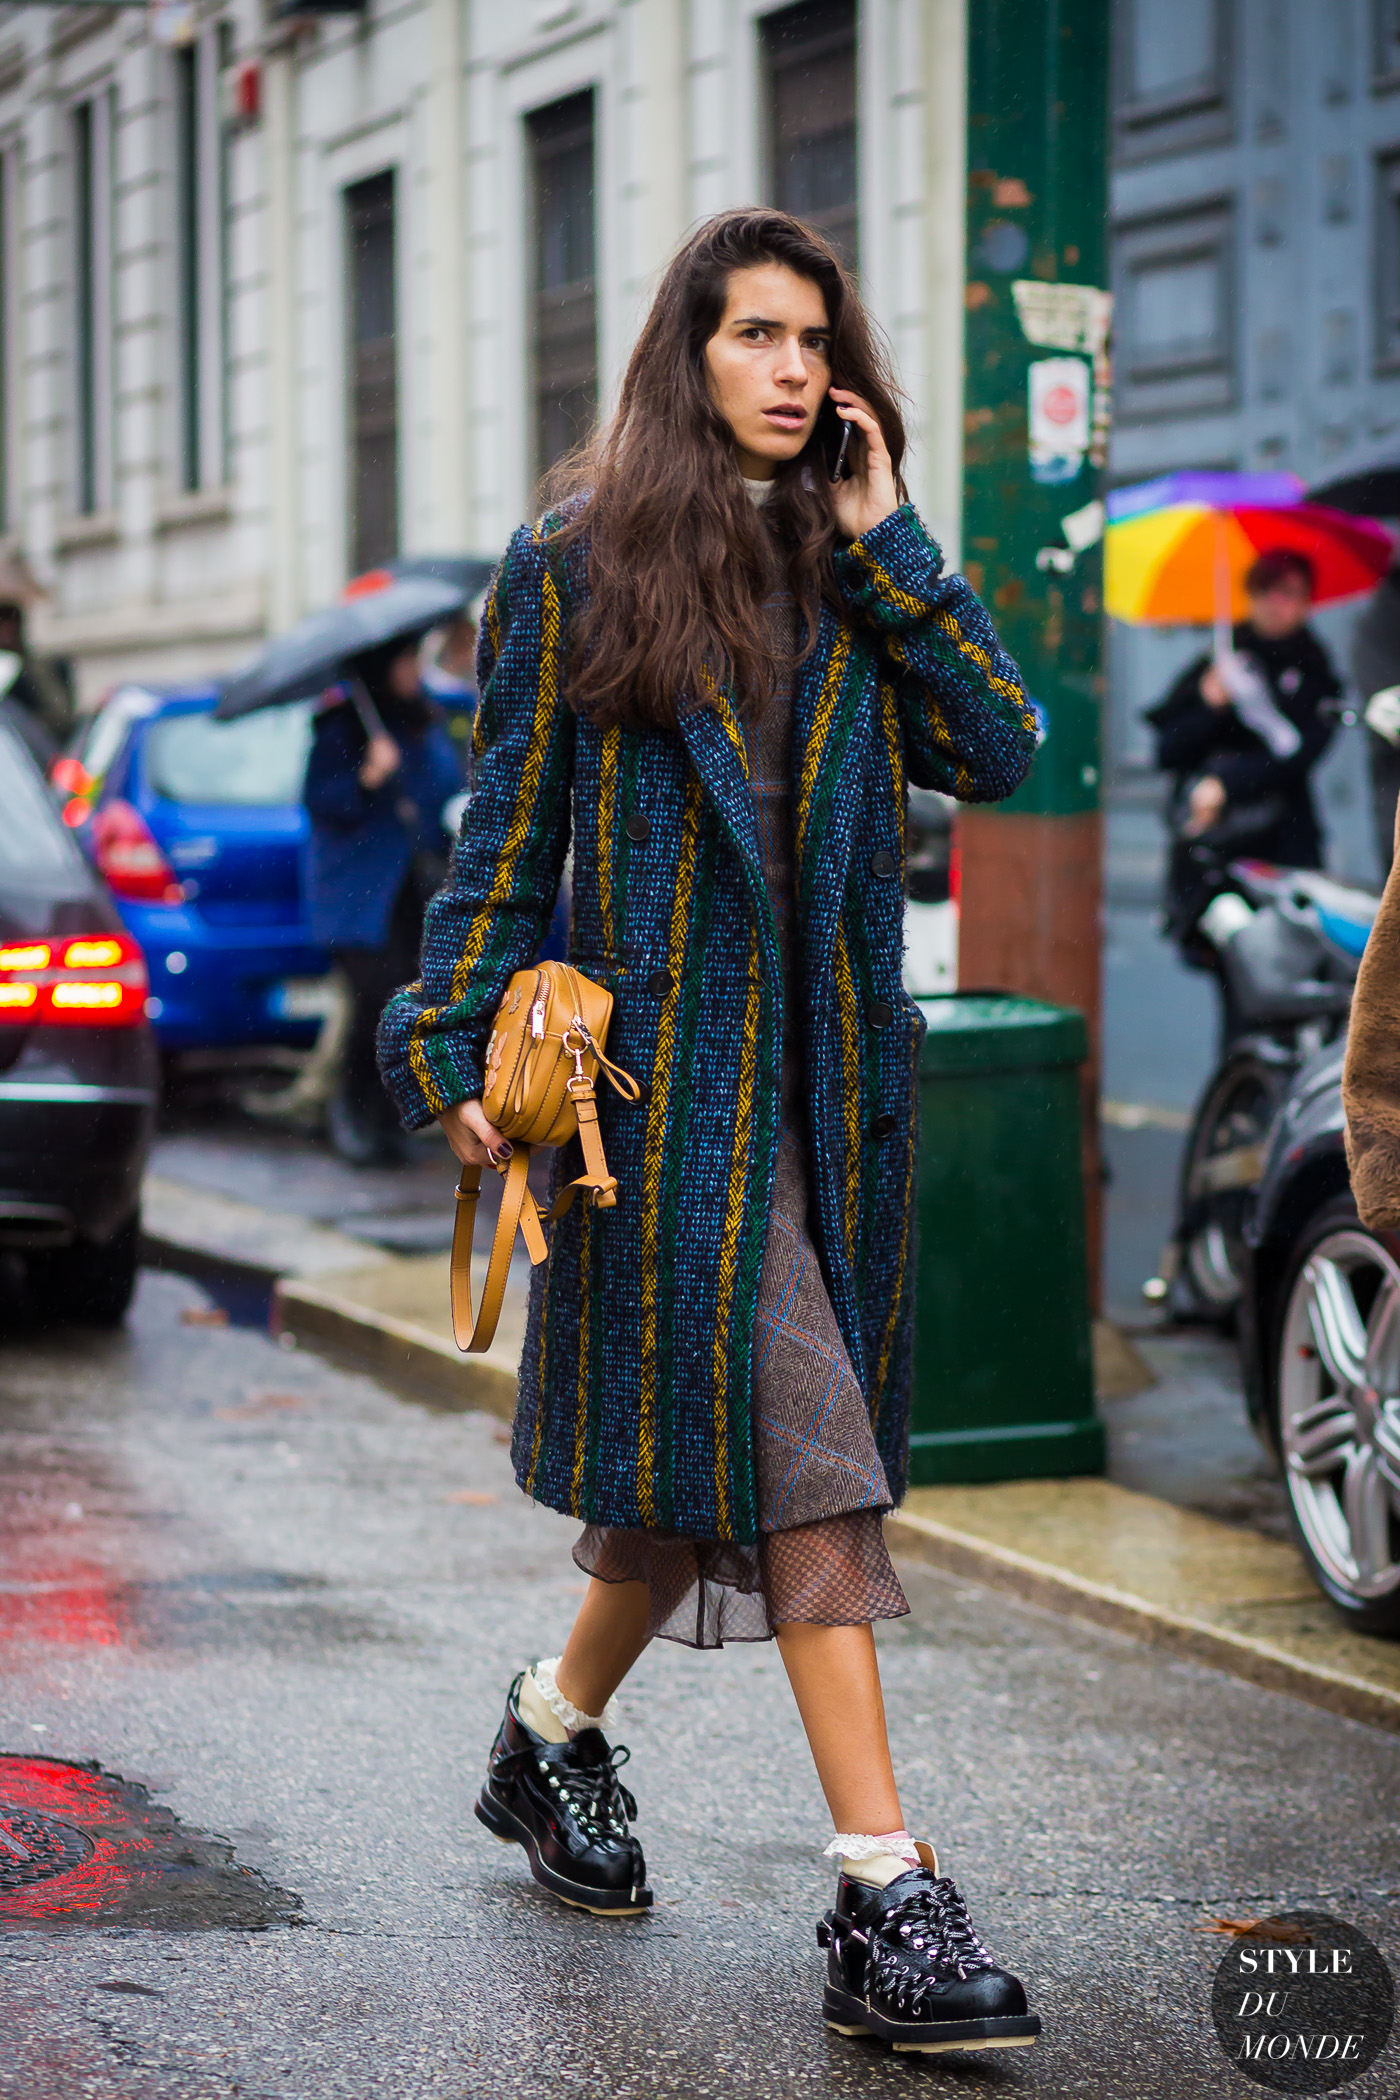 Chiara Totire Street Style Street Fashion Streetsnaps by STYLEDUMONDE Street Style Fashion Photography